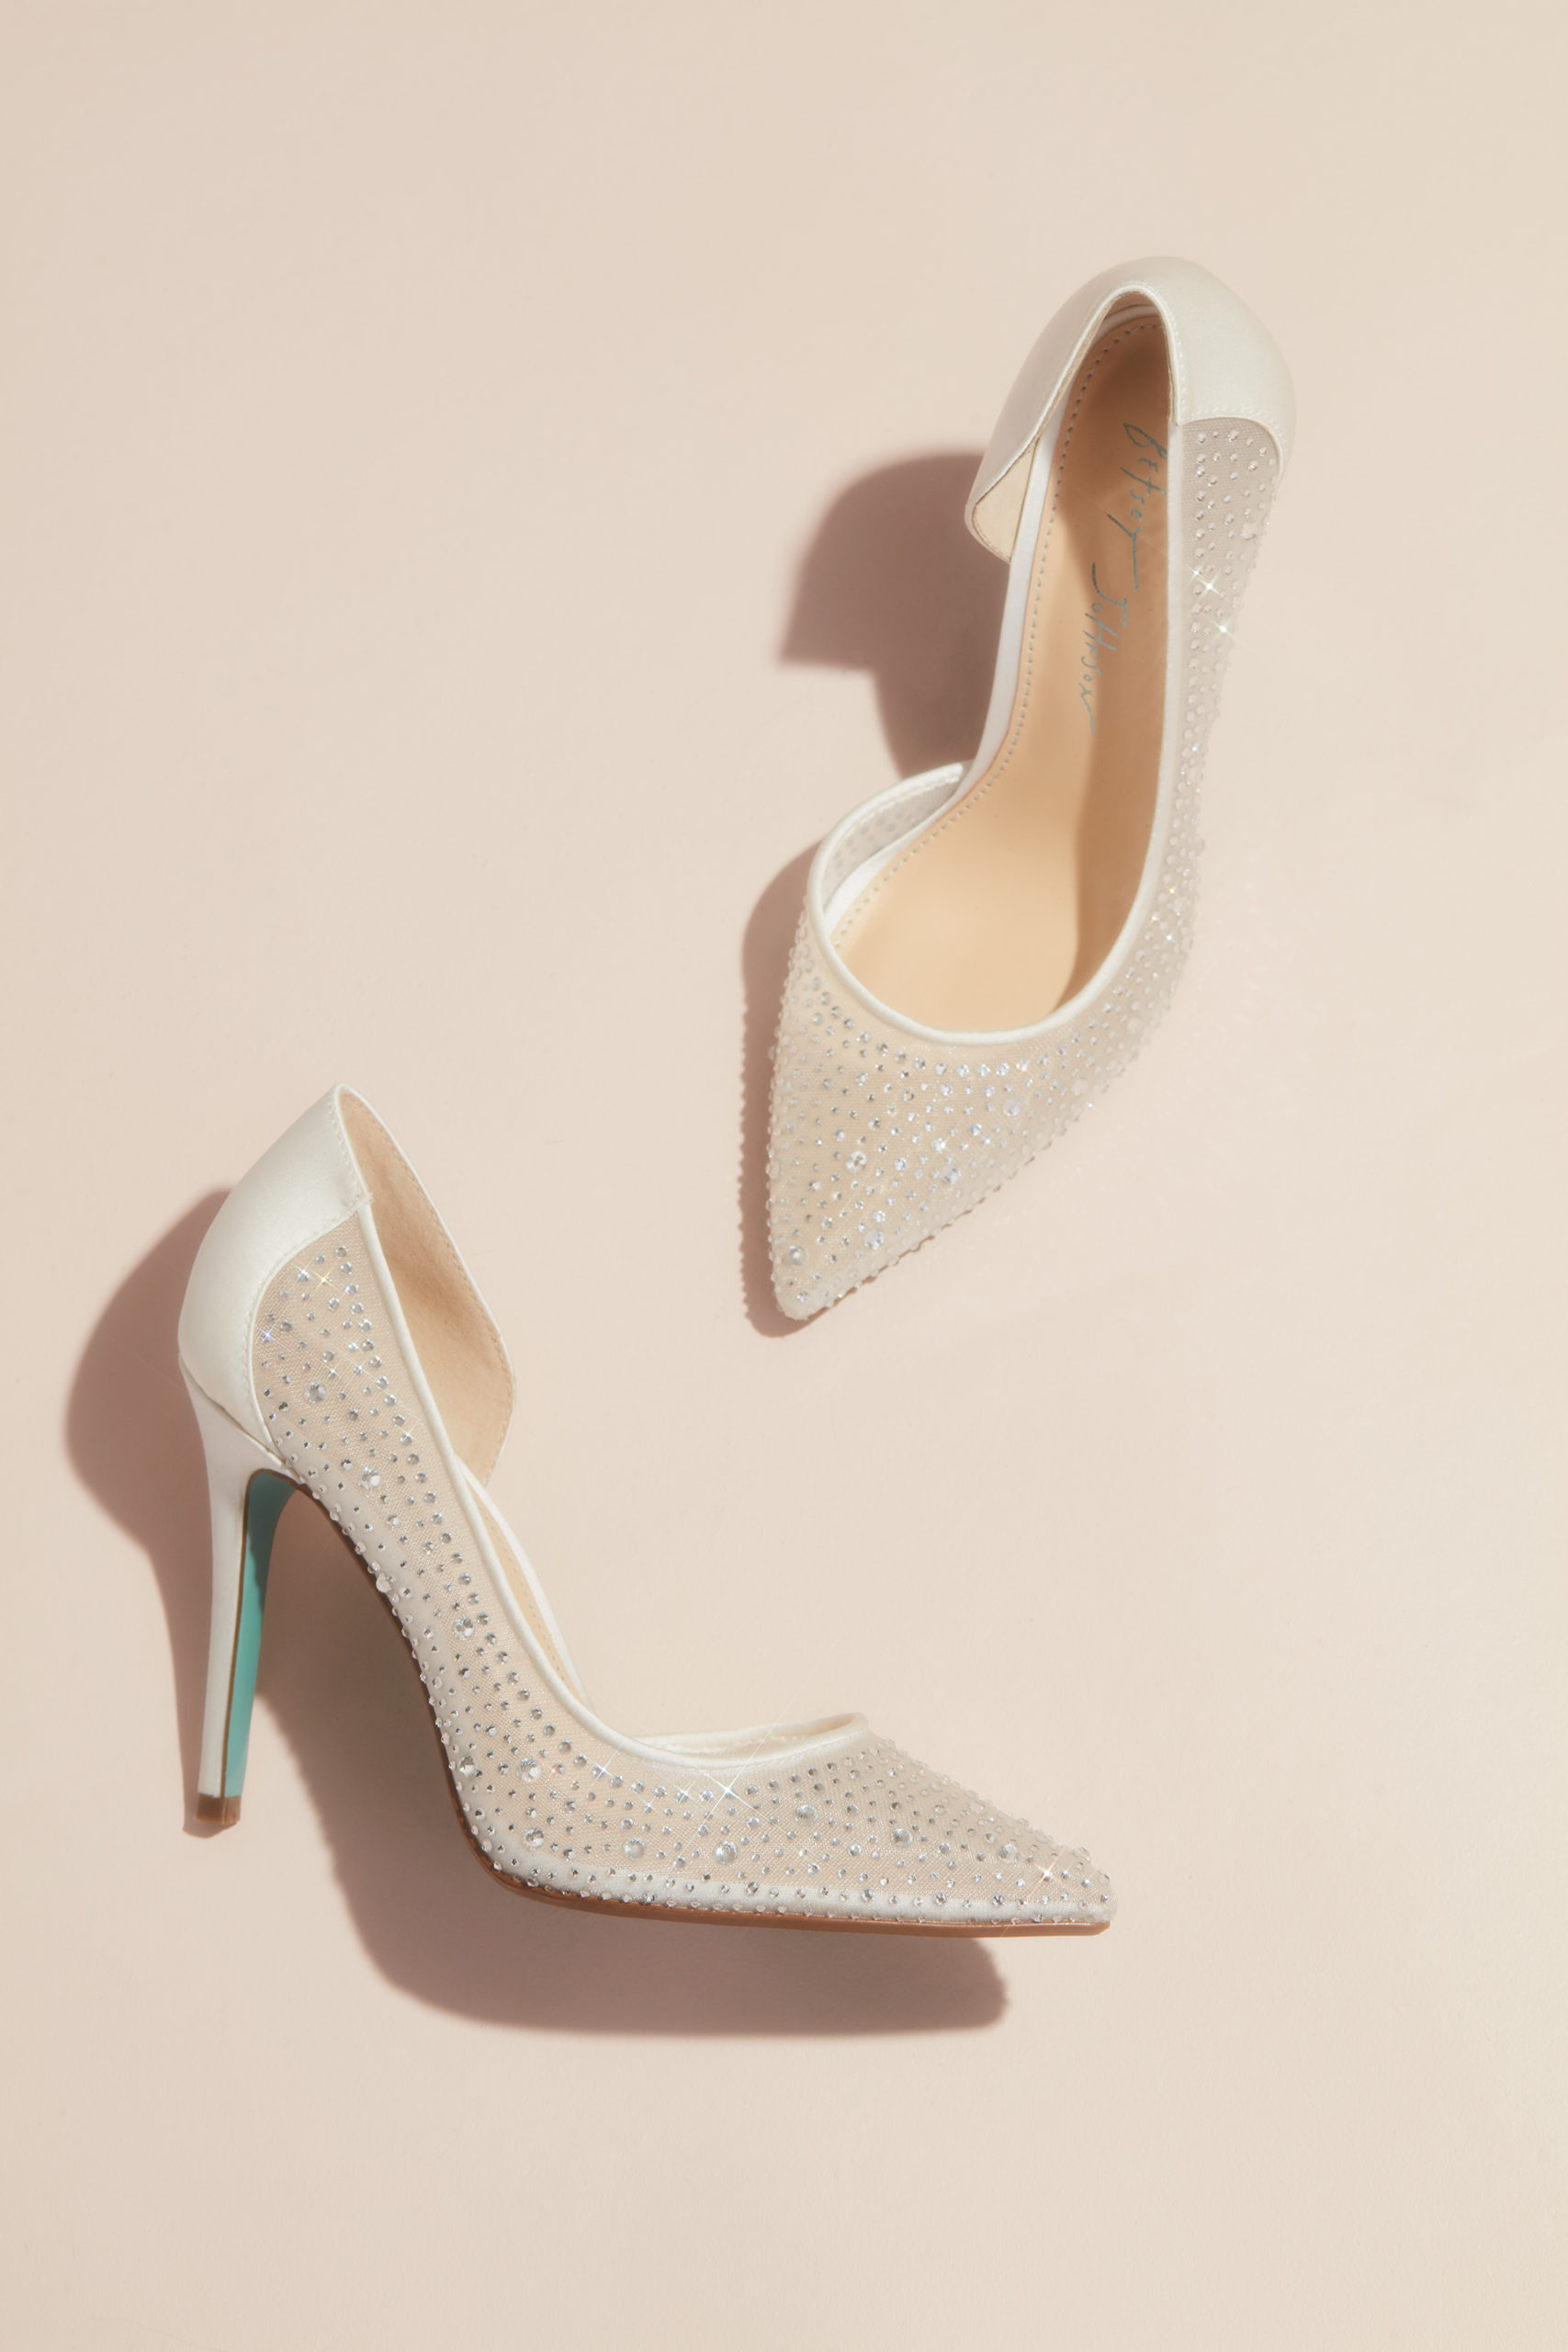 Mesh and Satin crystal pumps from the Betsey Johnson X David's Bridal collection